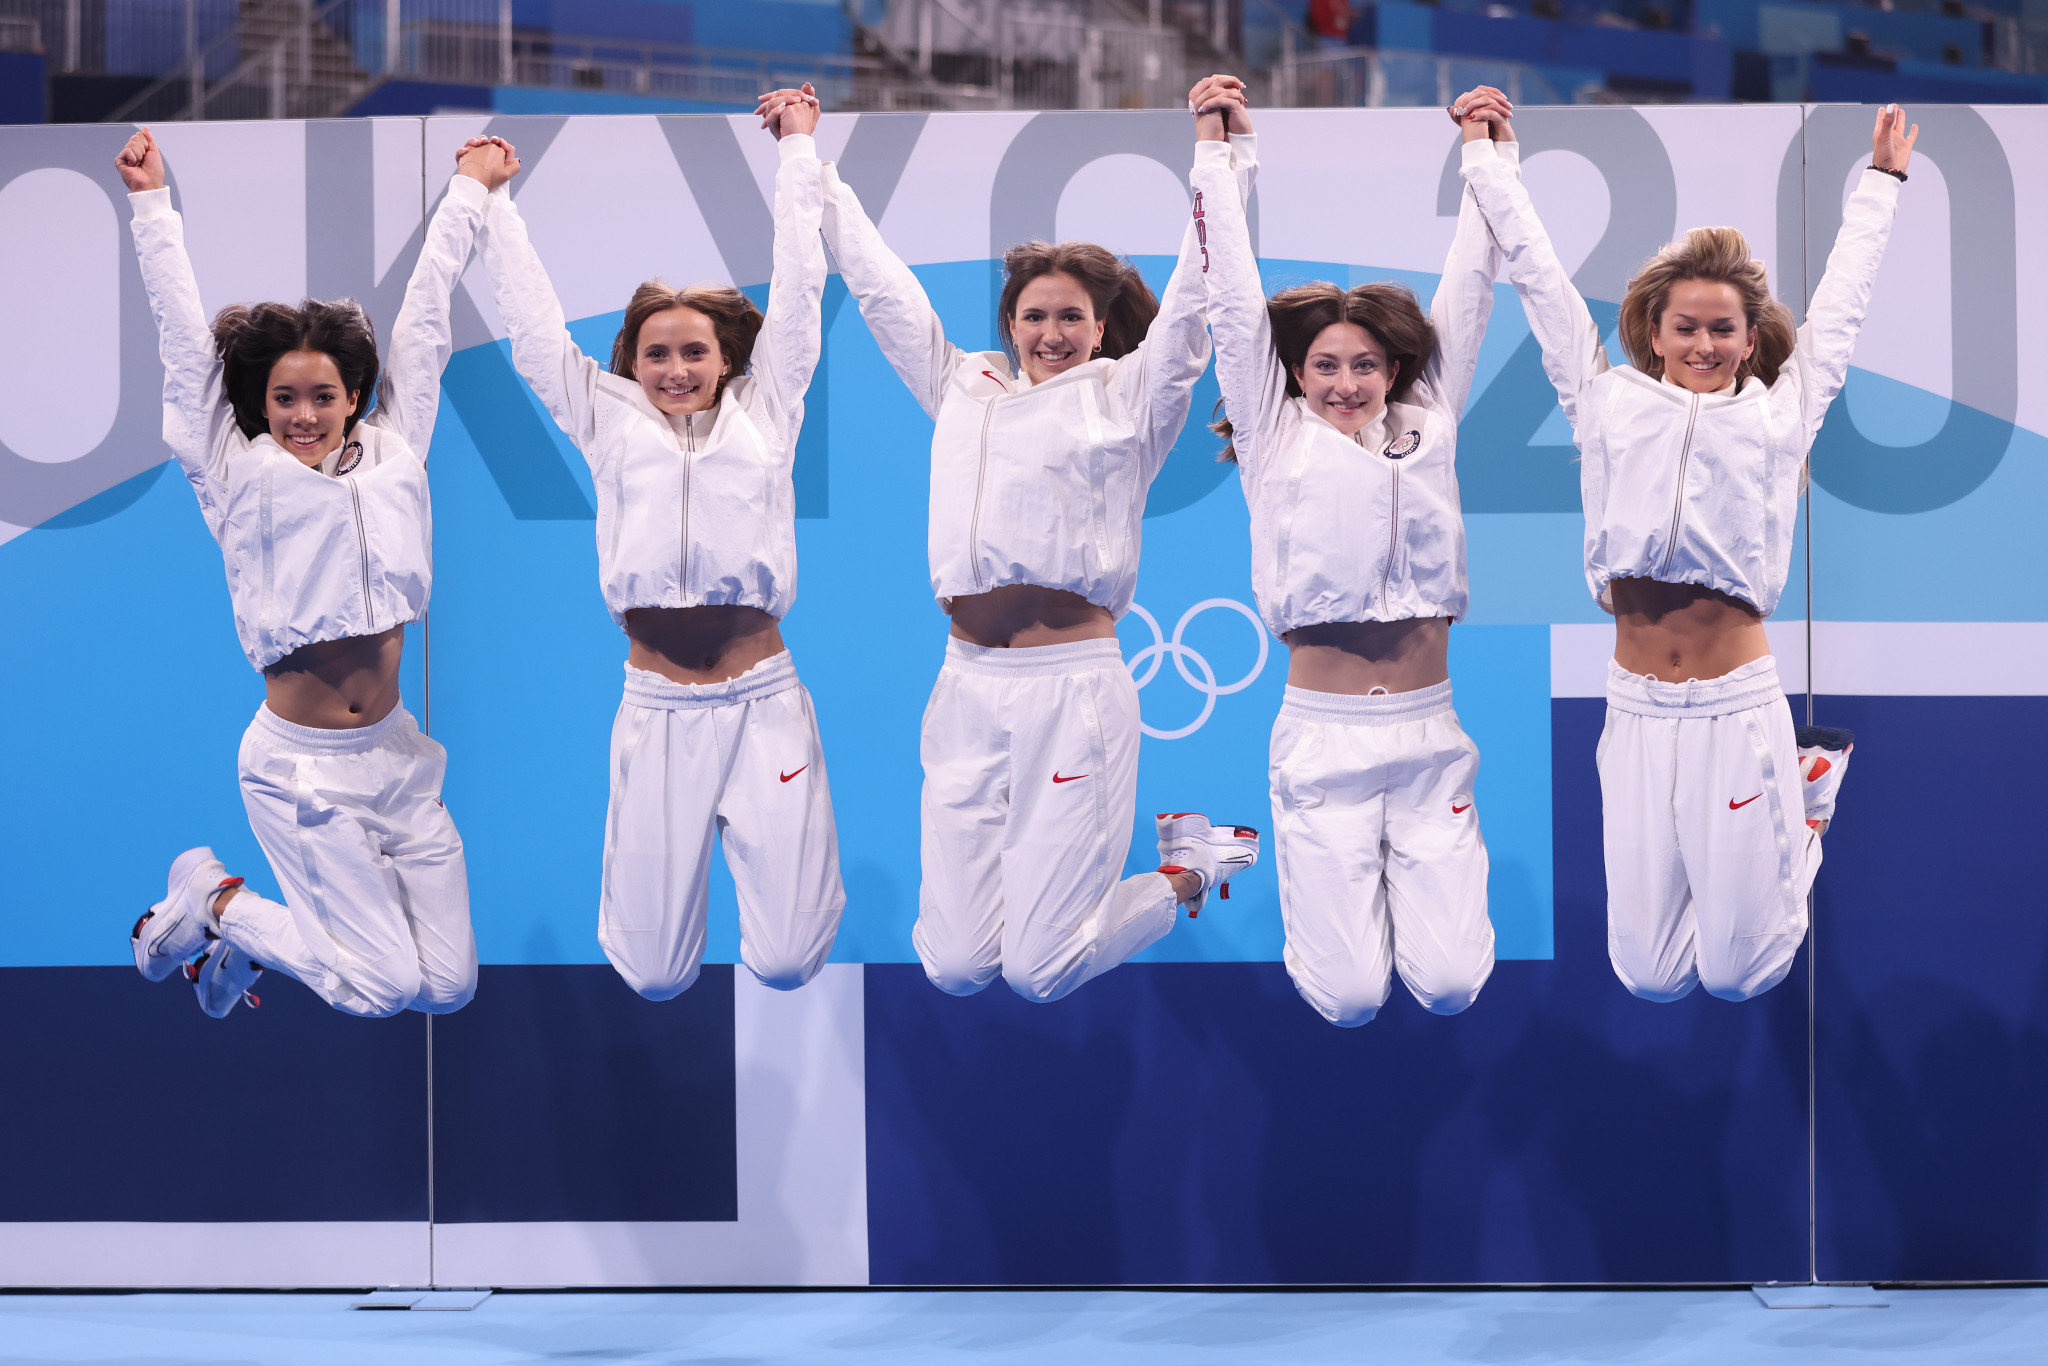 The United States rhythmic gymnastics team were flying high despite not reaching the final at the Ariake Arena ©Getty Images